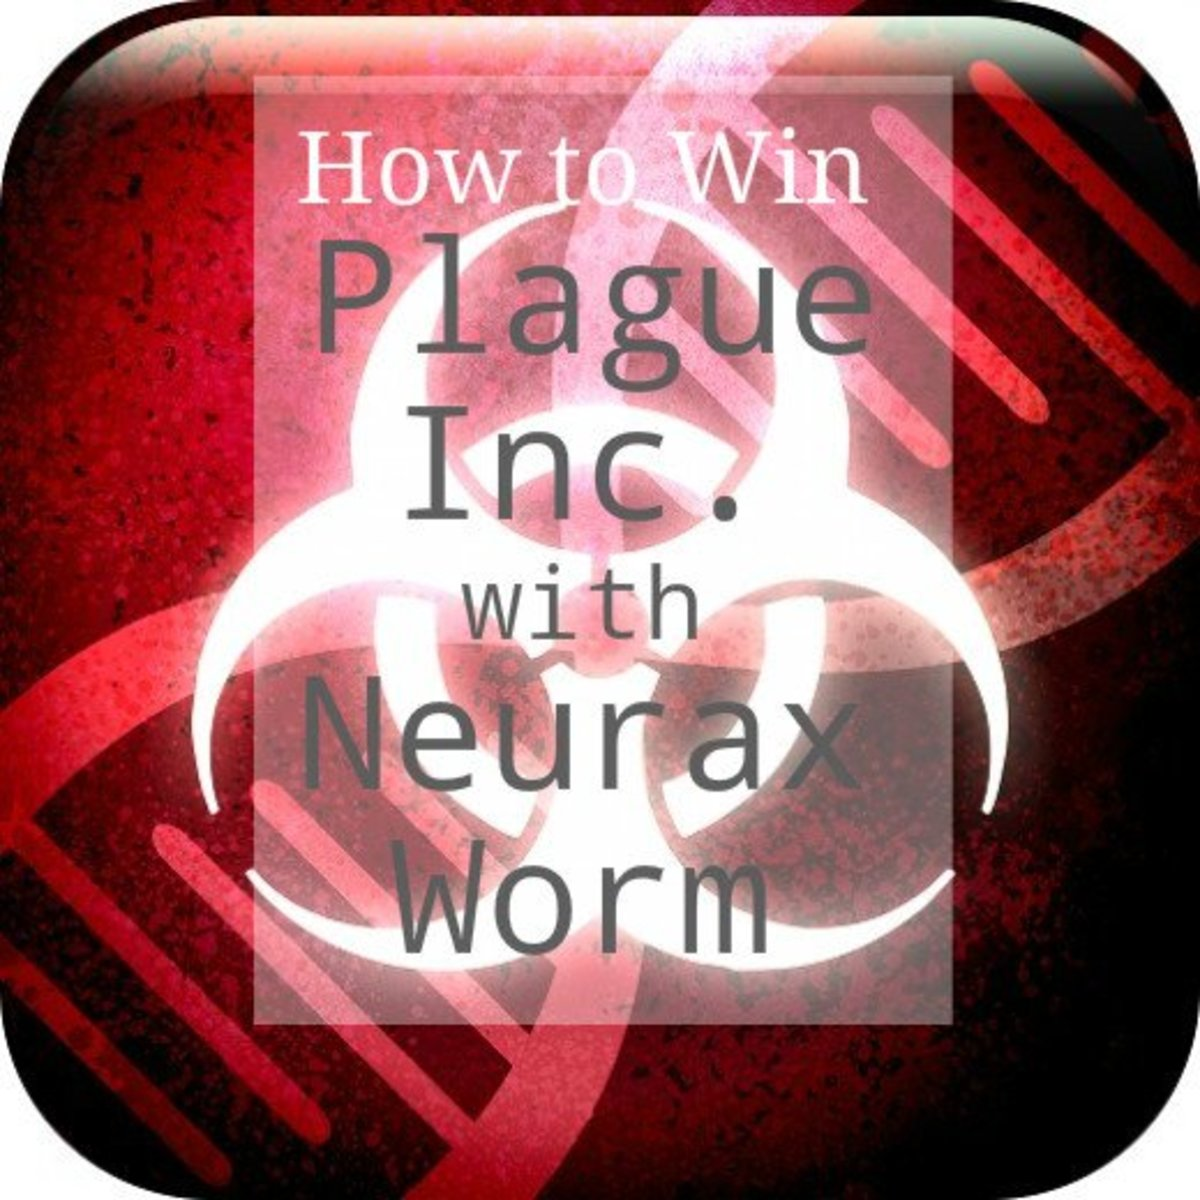 How to Beat Plague Inc. Neurax Worm on Normal